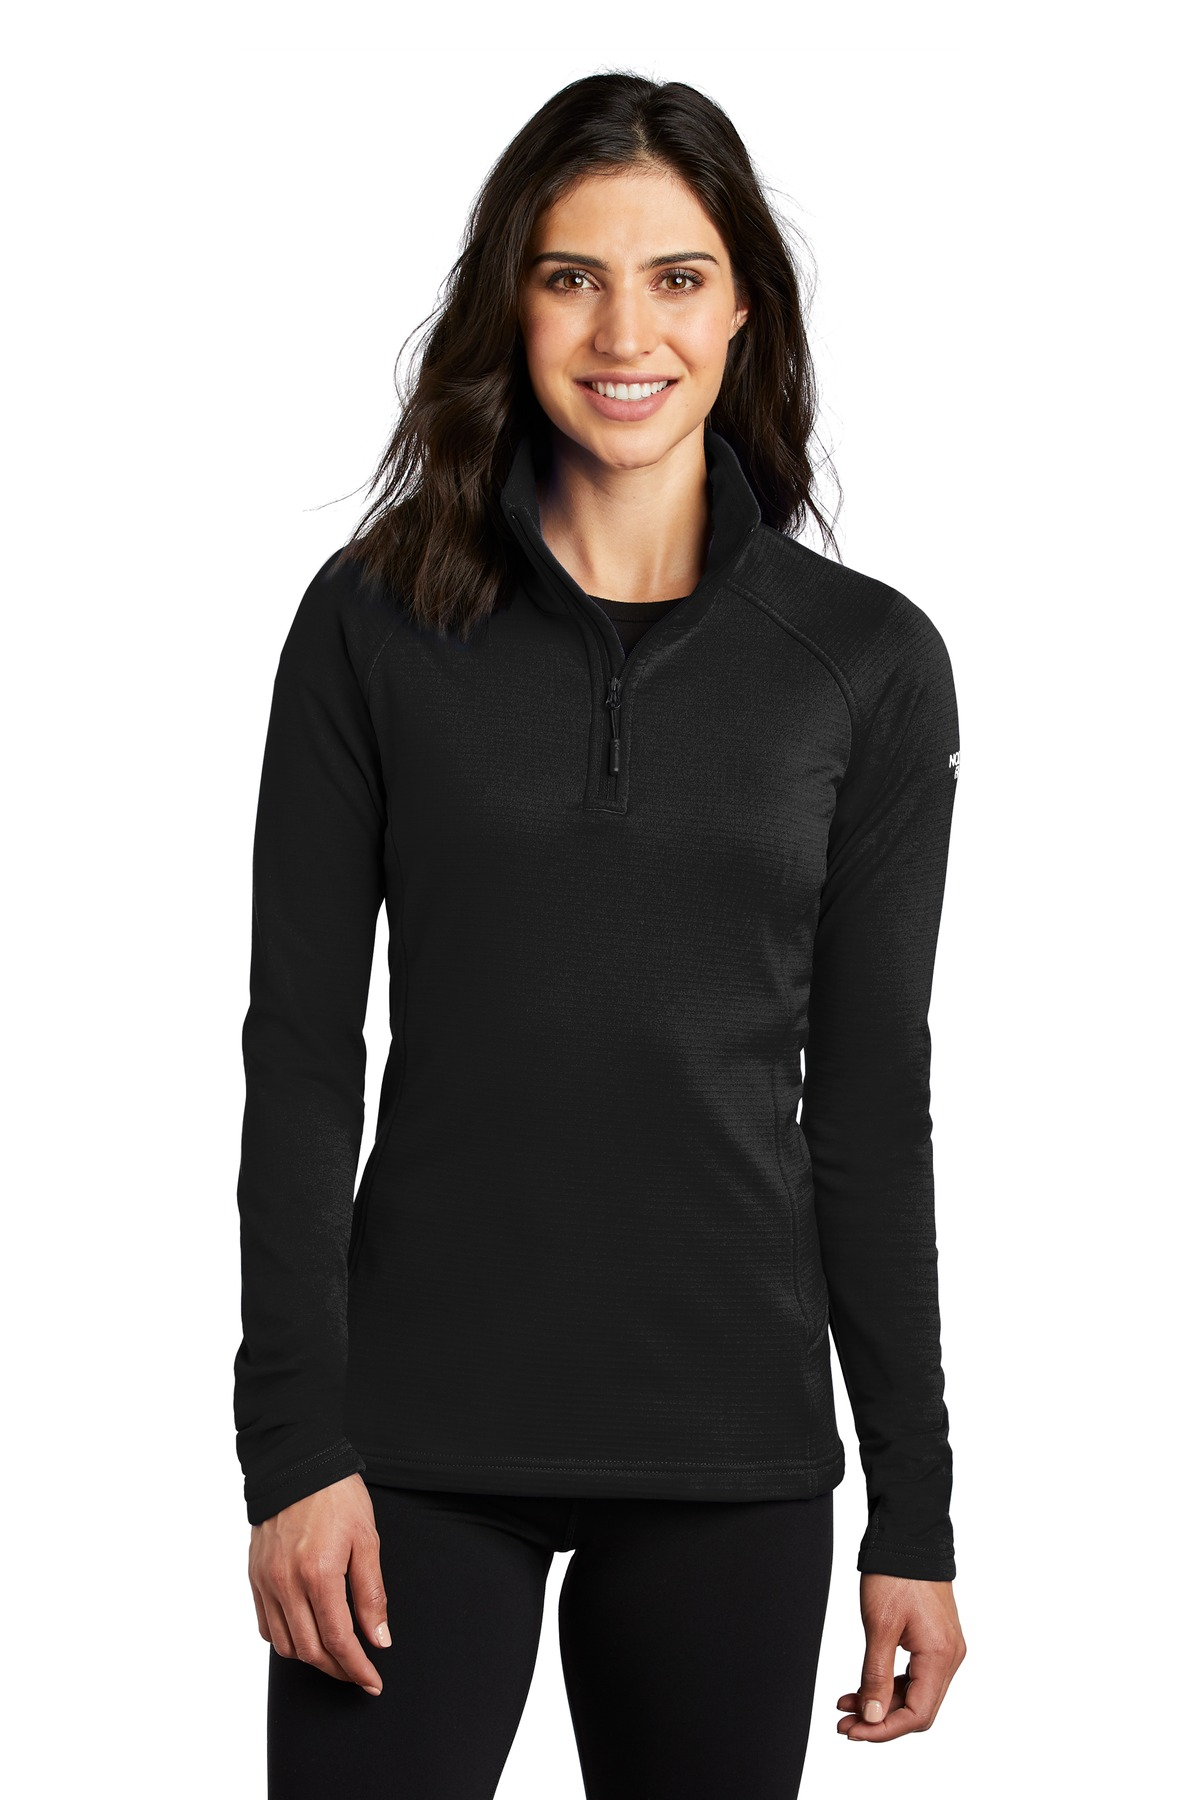 The North Face  ®  Ladies Mountain Peaks 1/4-Zip Fleece NF0A47FC - TNF Black